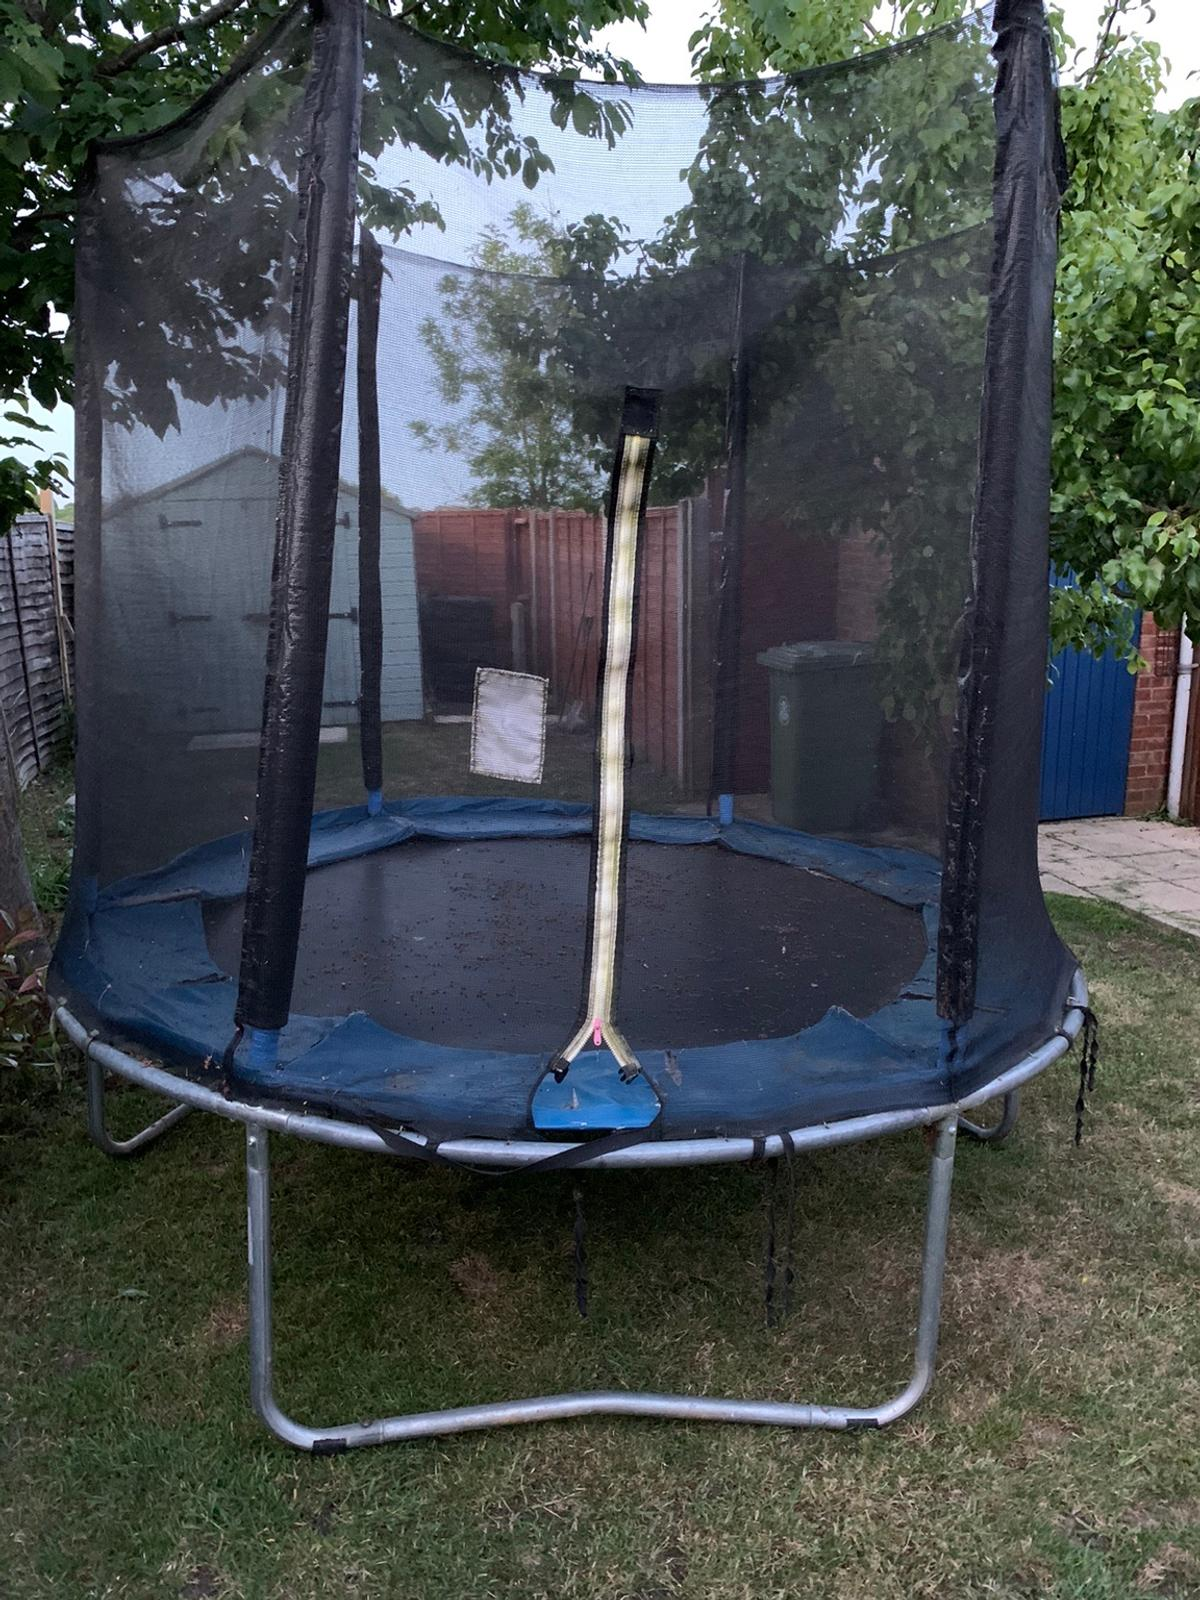 Good used condition, could do with a new pad round the edge. The net has no rips and the zip works fine, may be able to deliver locally.